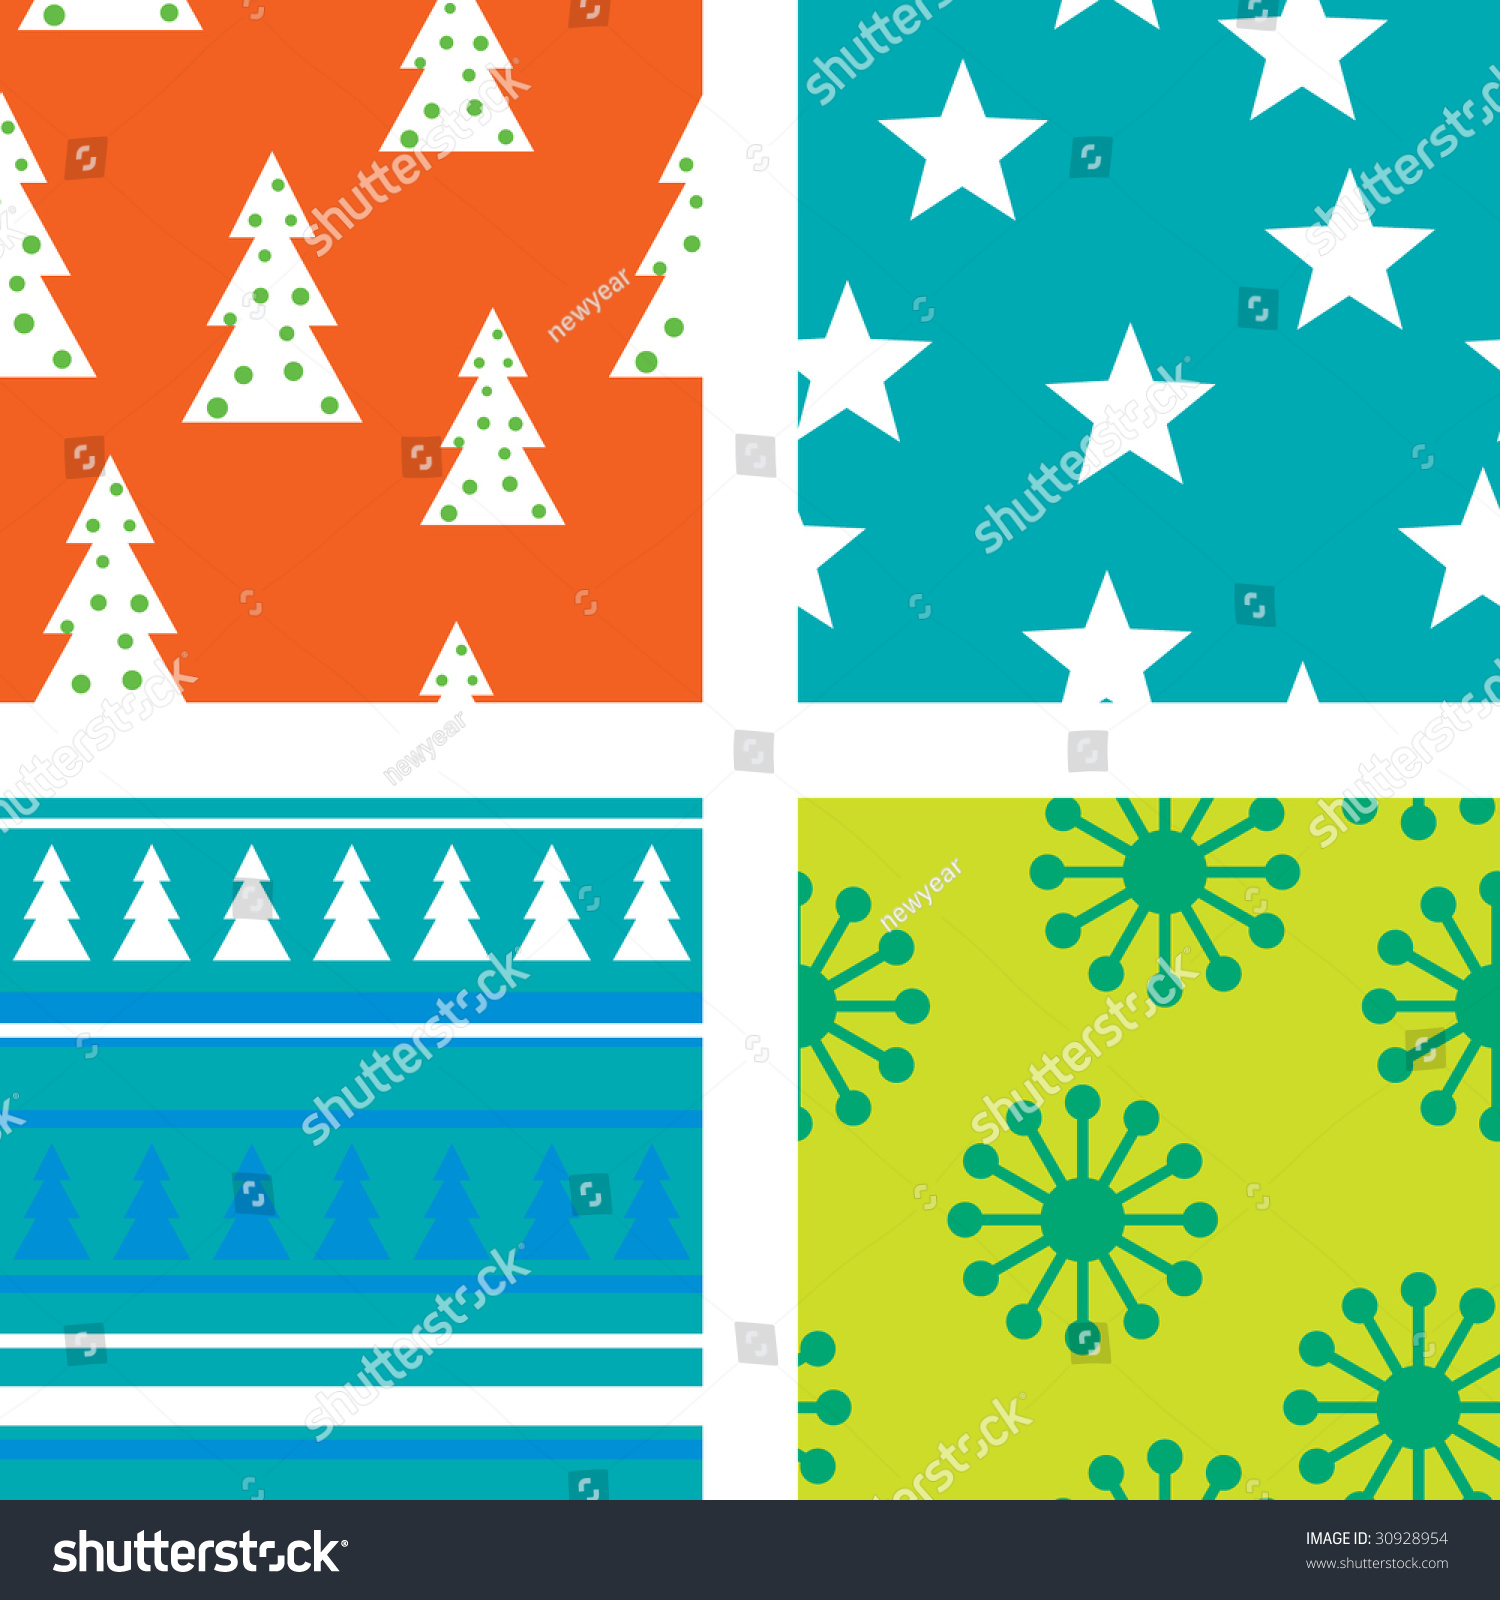 Abstract Backgrounds Stock Vector Illustration 30928954